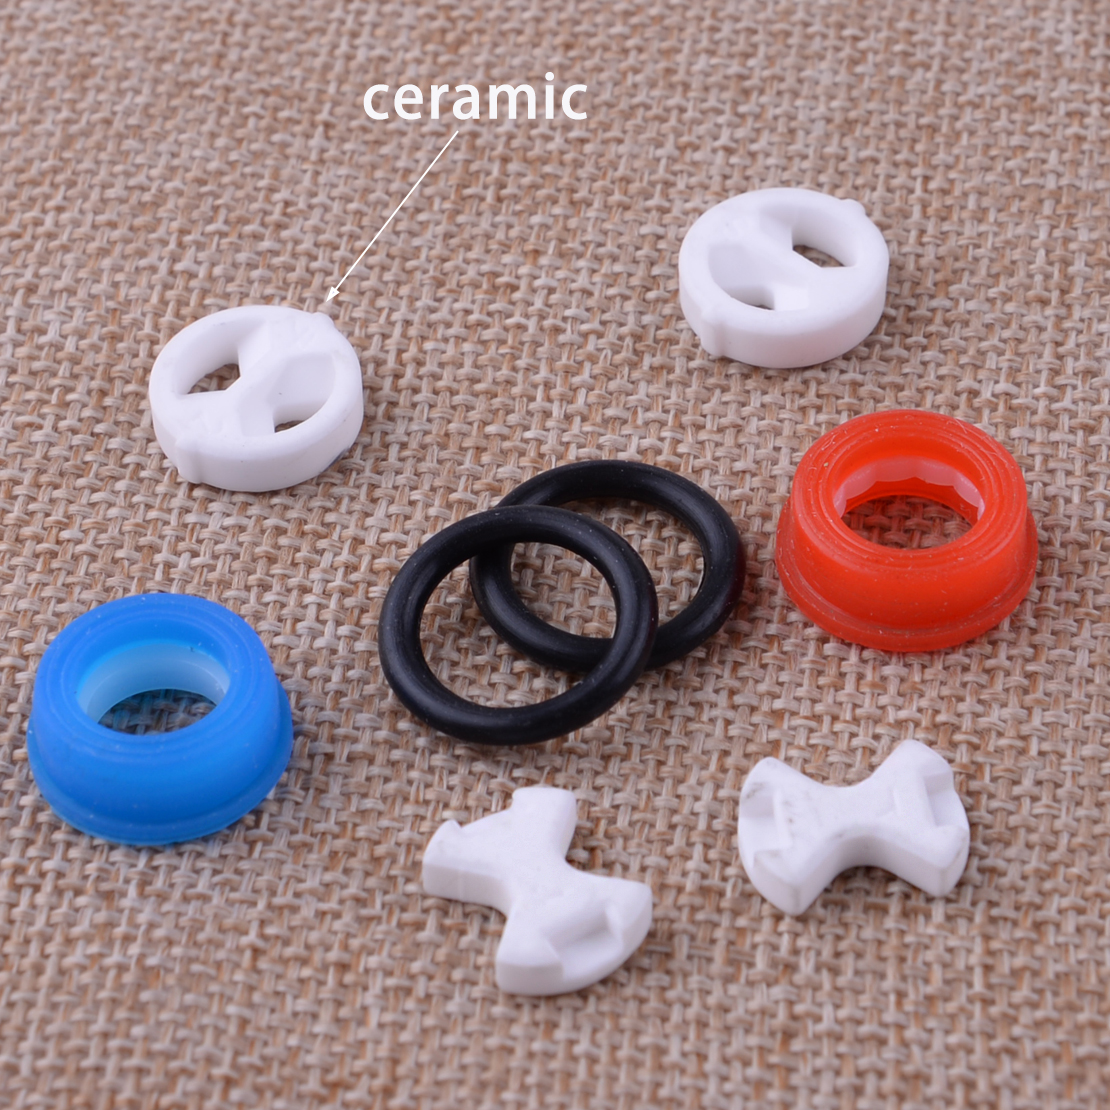 8Pcs/Set High Quality Valve Tap Replacement Ceramic Disc & Silicon Washer Gasket Insert 1/2''